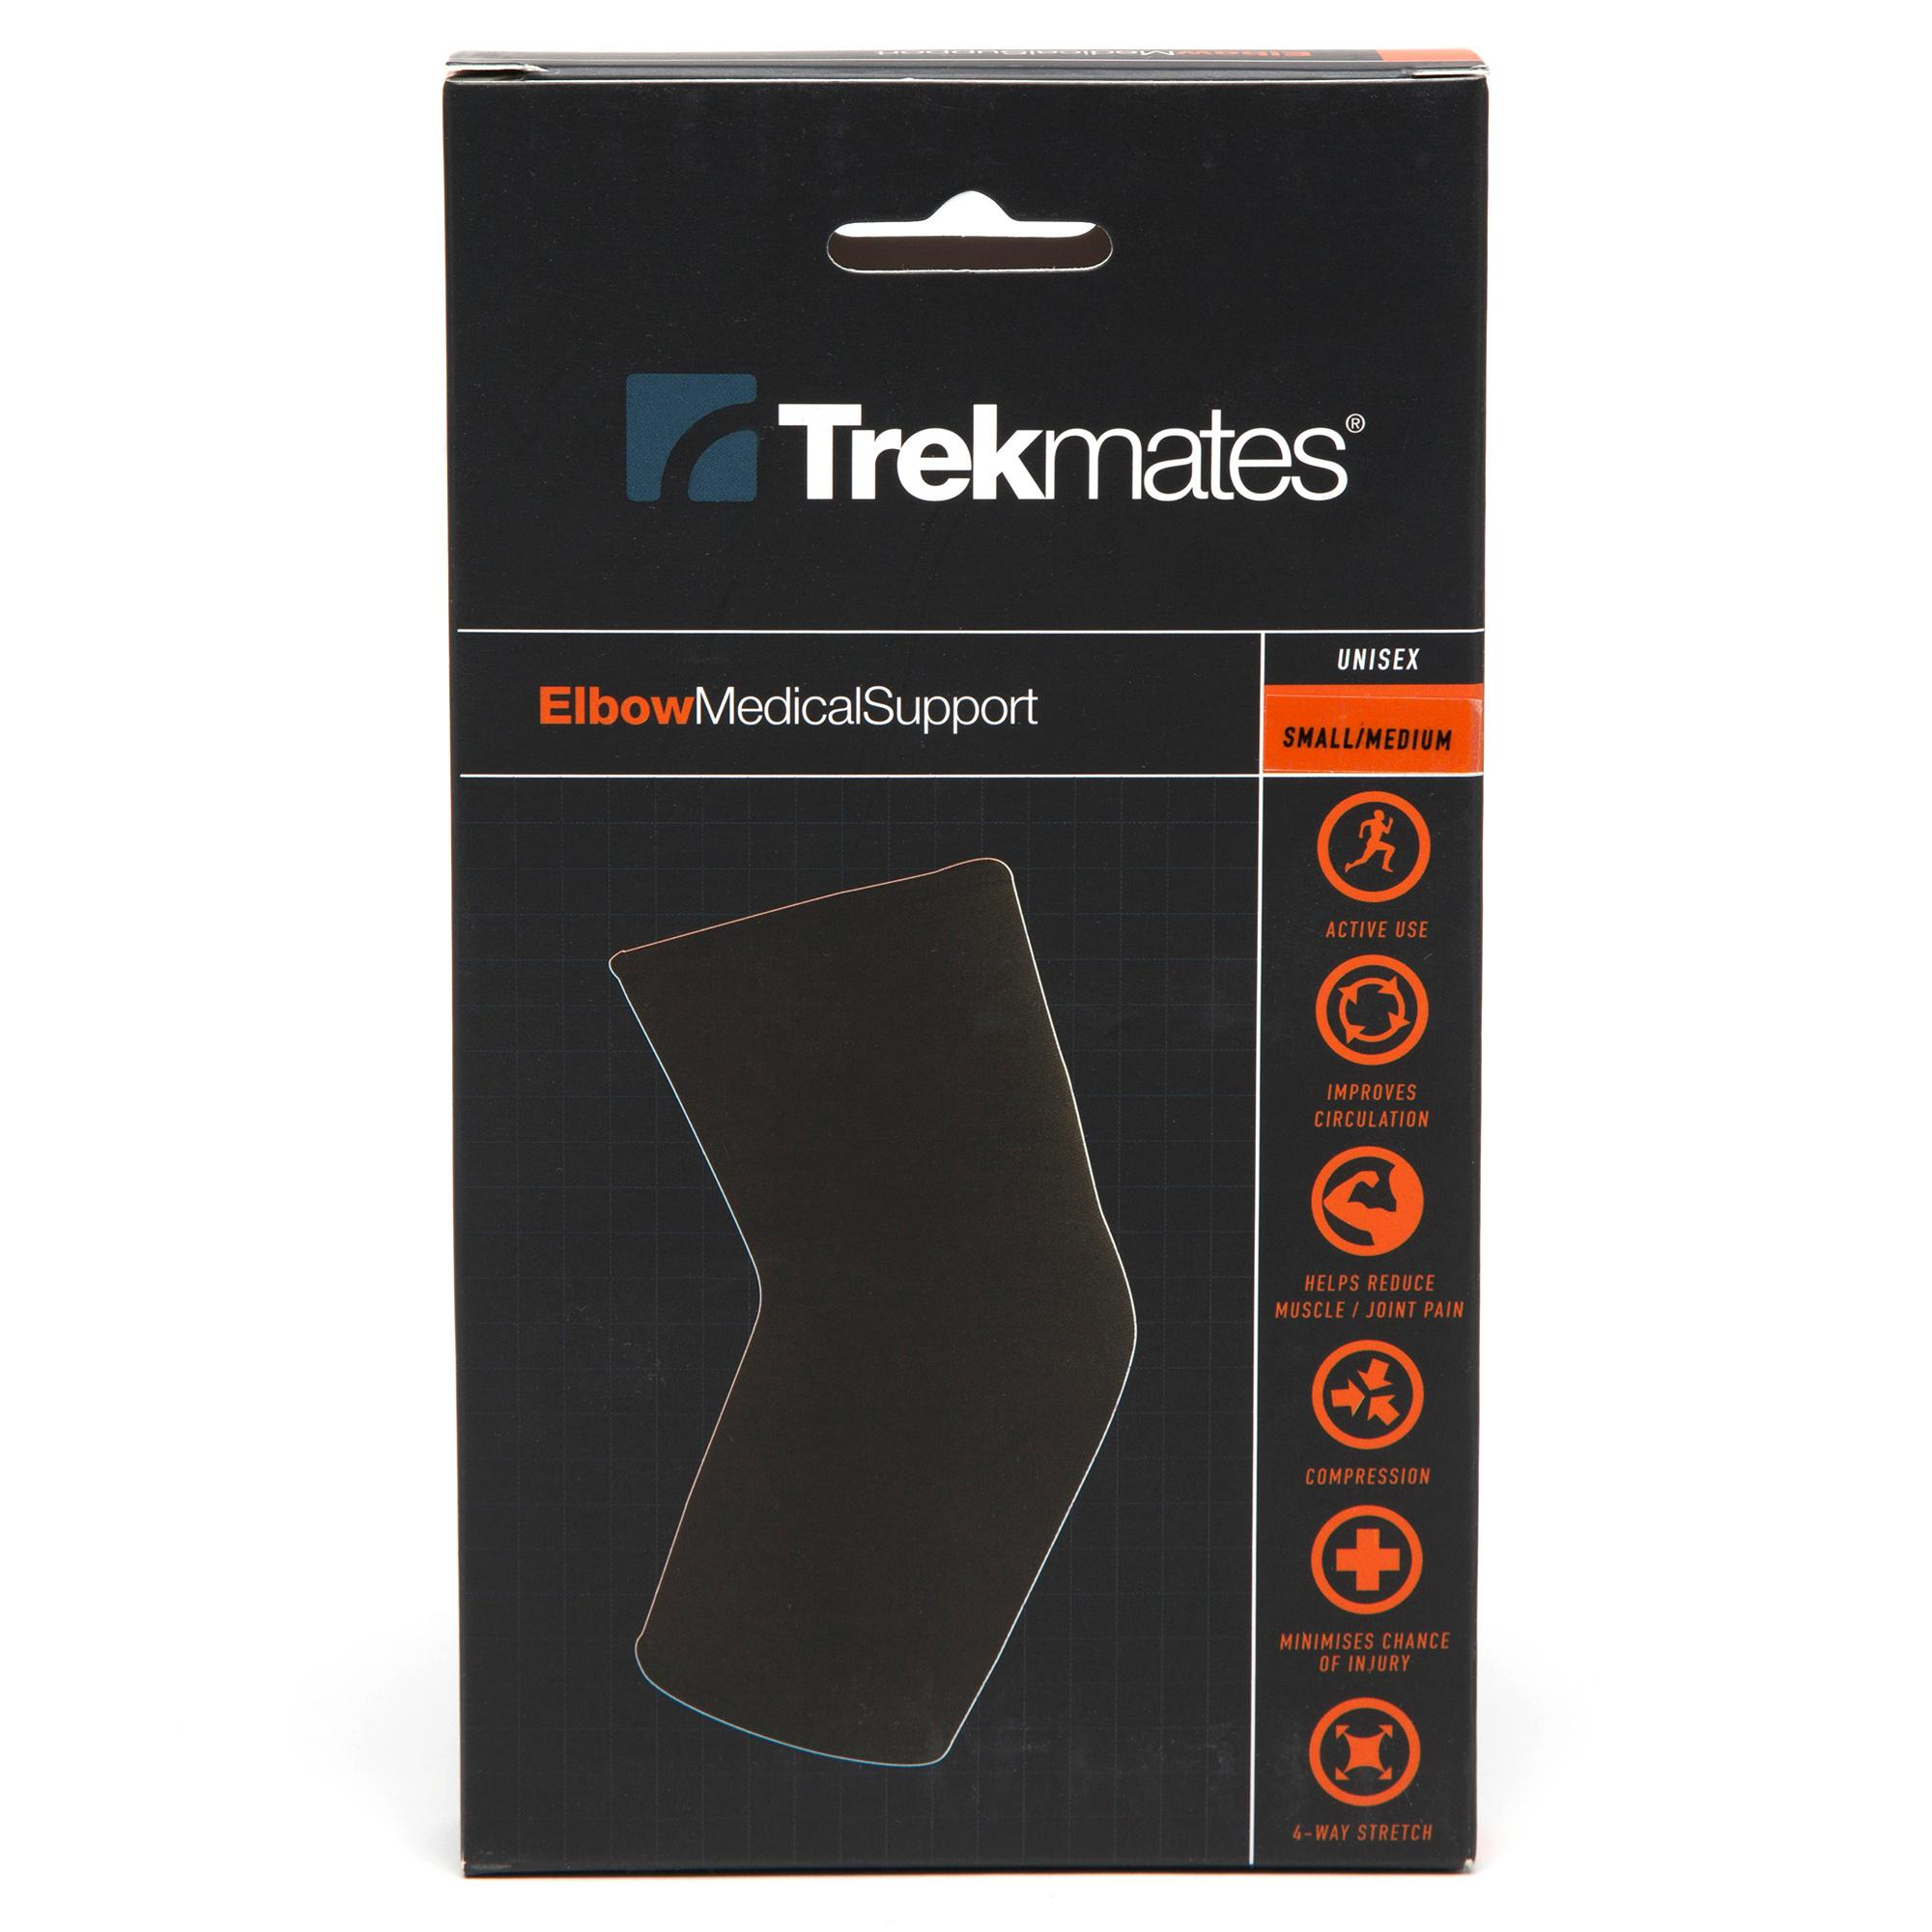 Trekmates Elbow Medical Support, Black